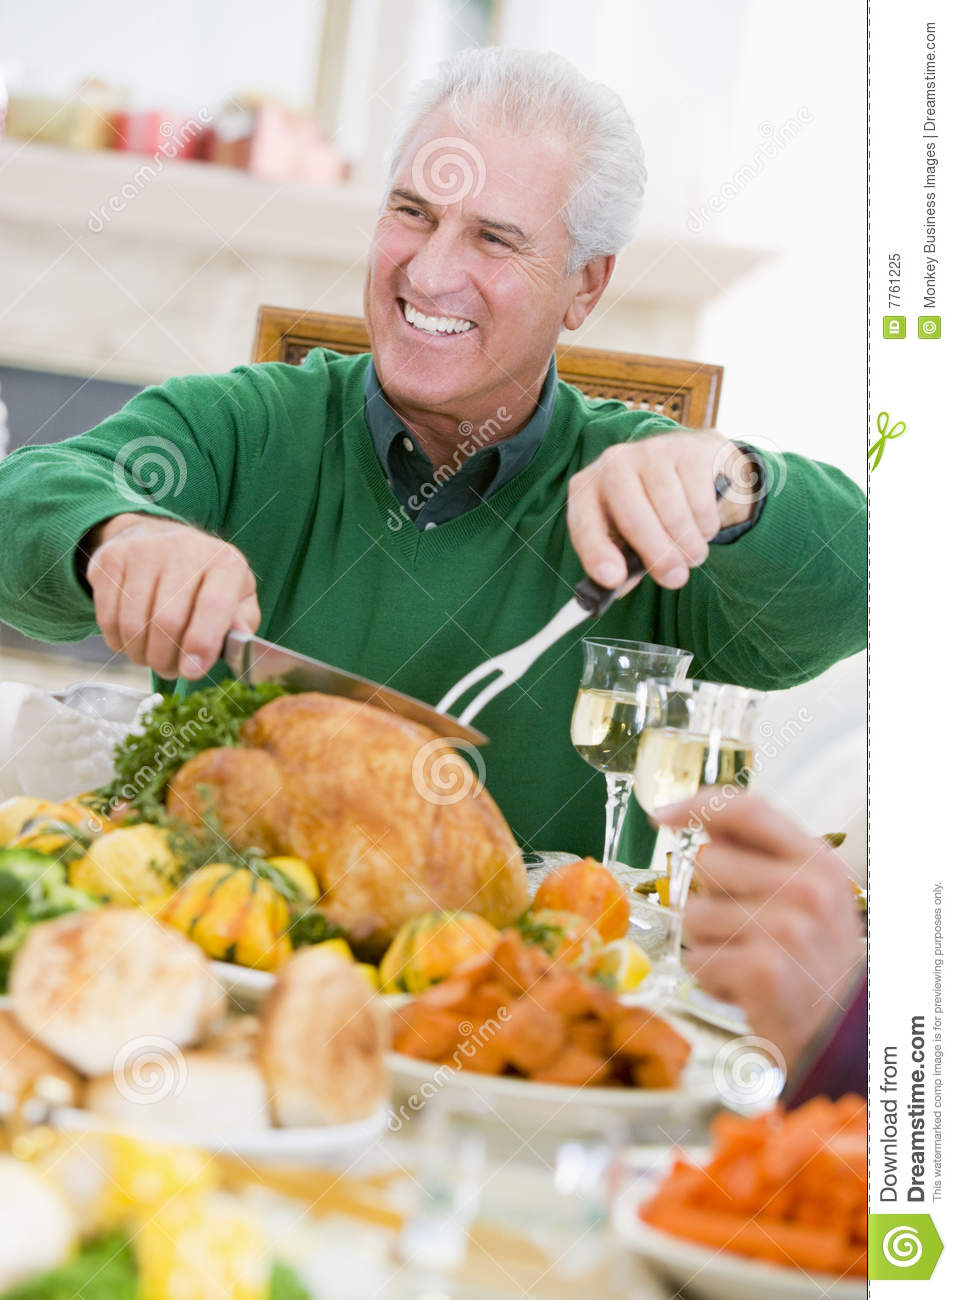 Man Carving Up Turkey At Christmas Dinner Stock Image